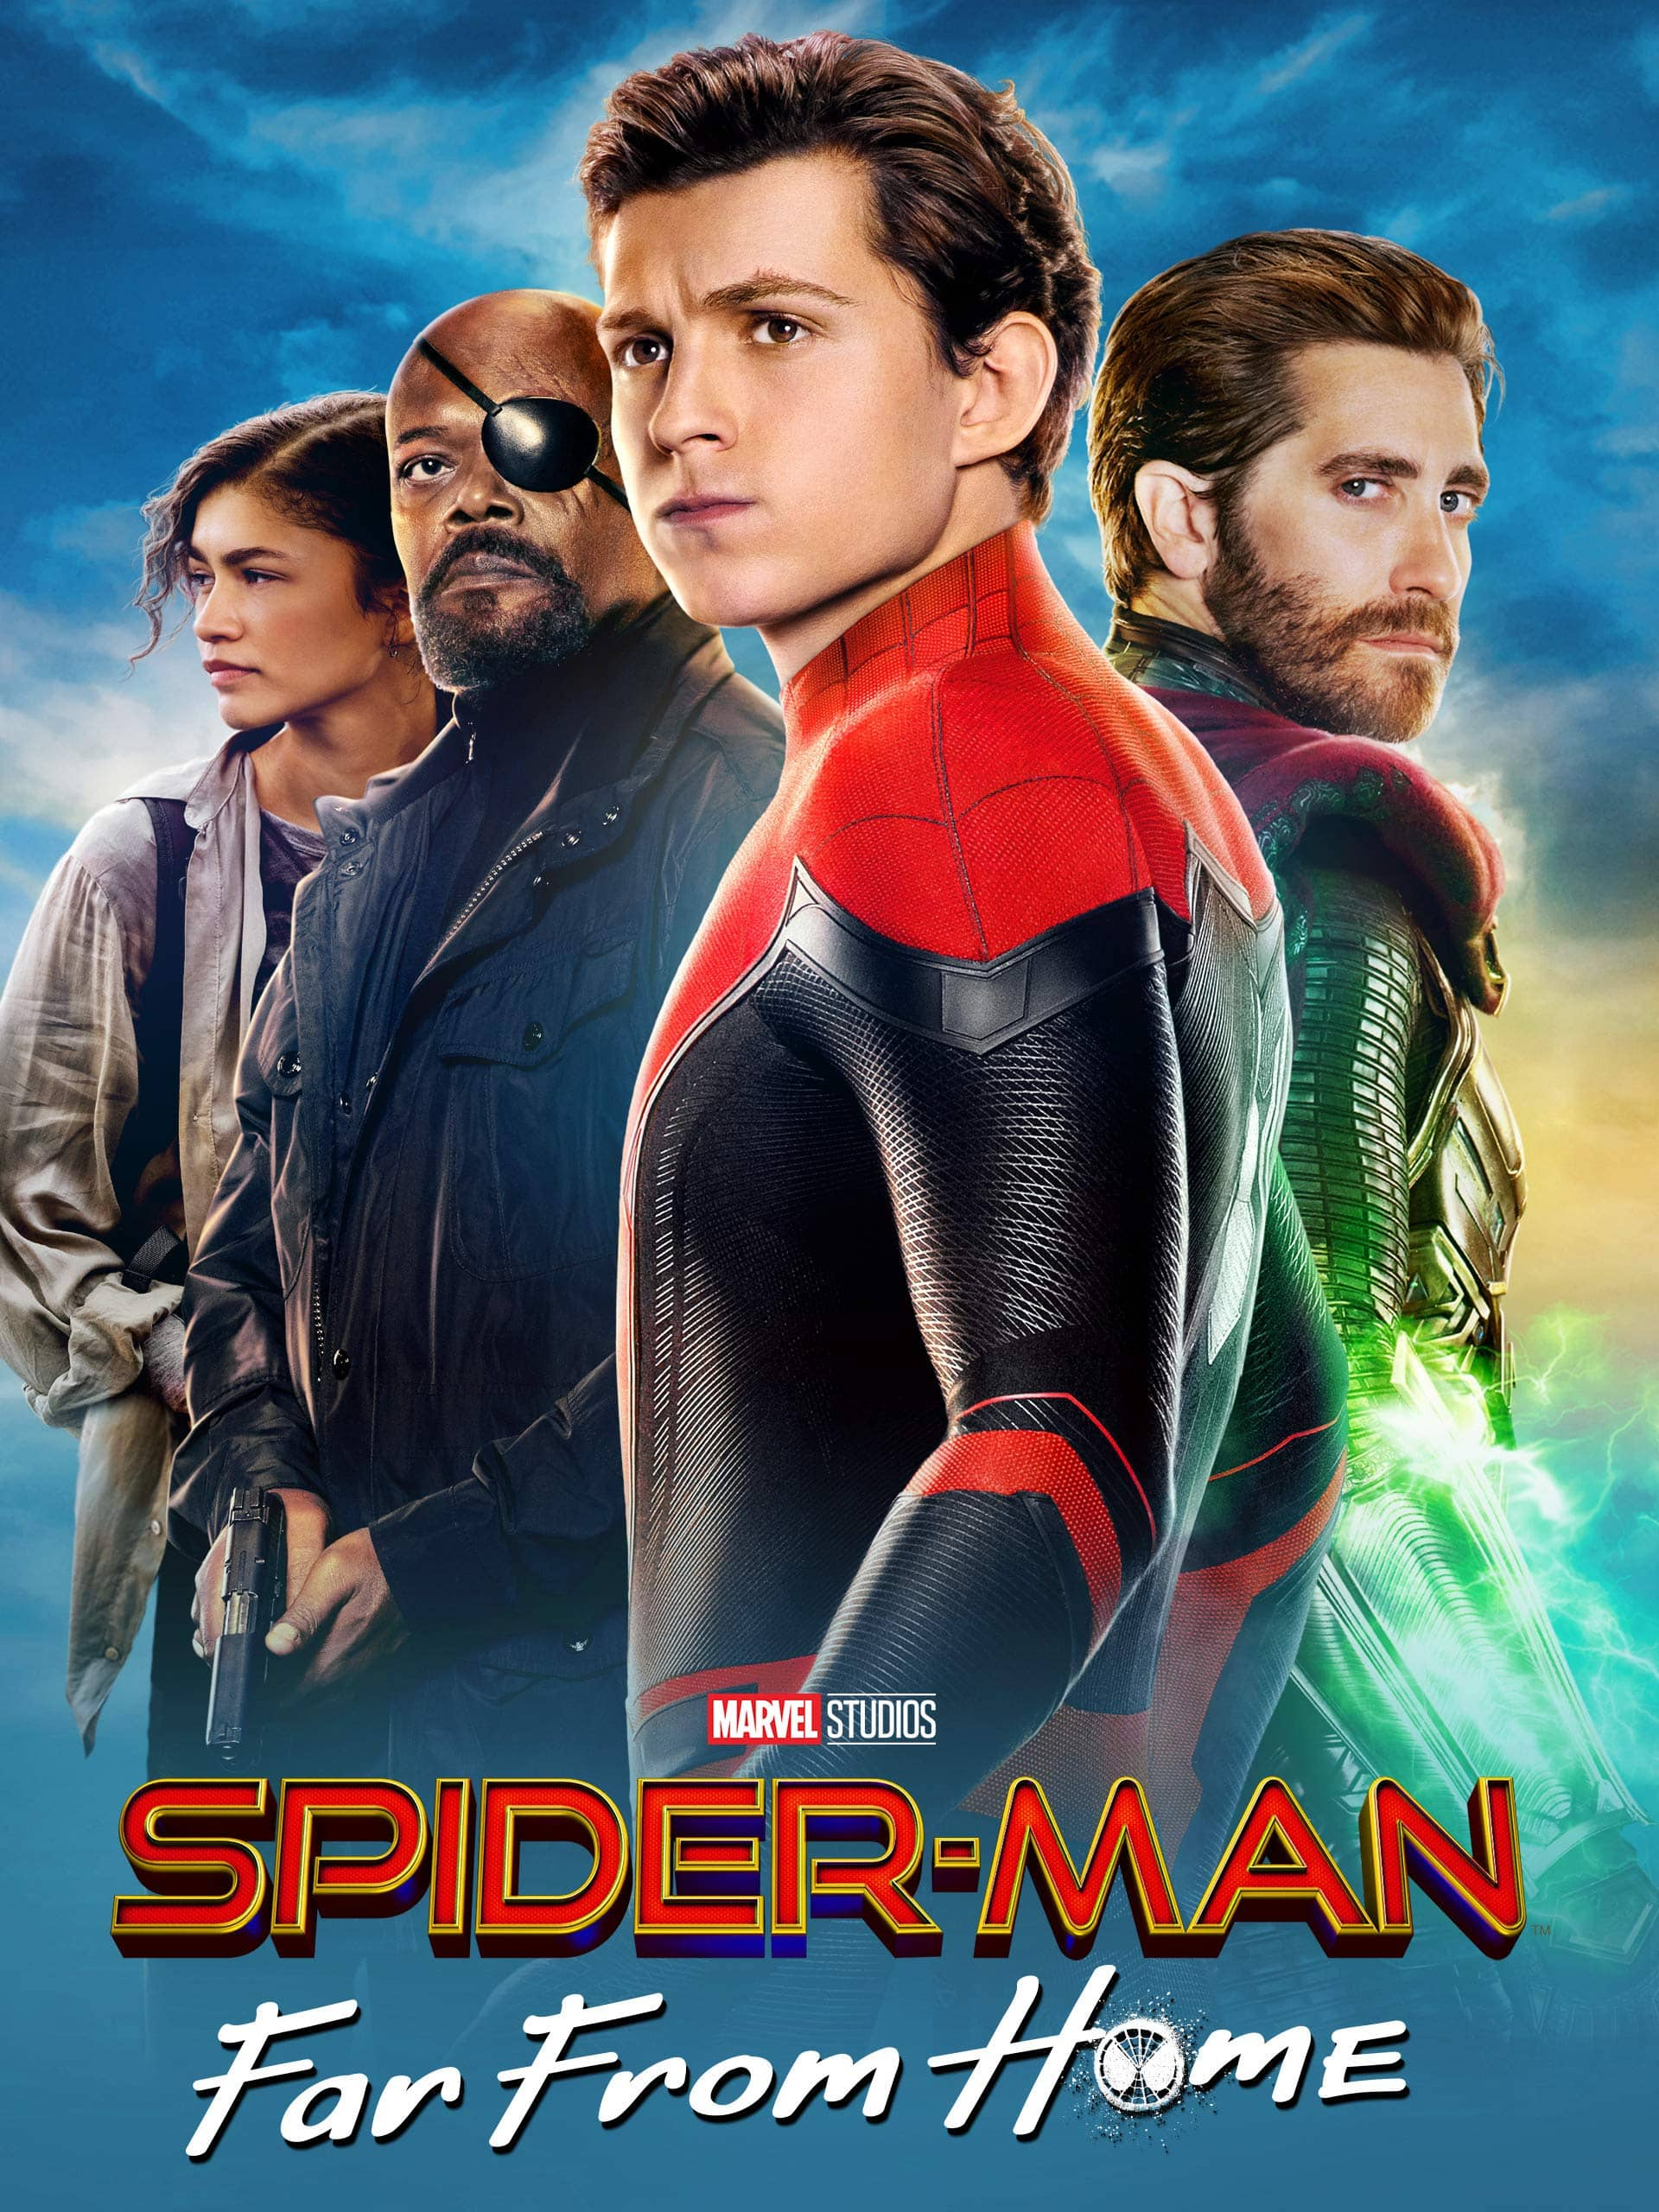 Digital HD Movie Rental: Spider-Man: Far From Home $3.99 or Spider-Man: Homecoming or Spider-Man: Into the Spider-Verse $1.99 w/ Amazon Prime Membership